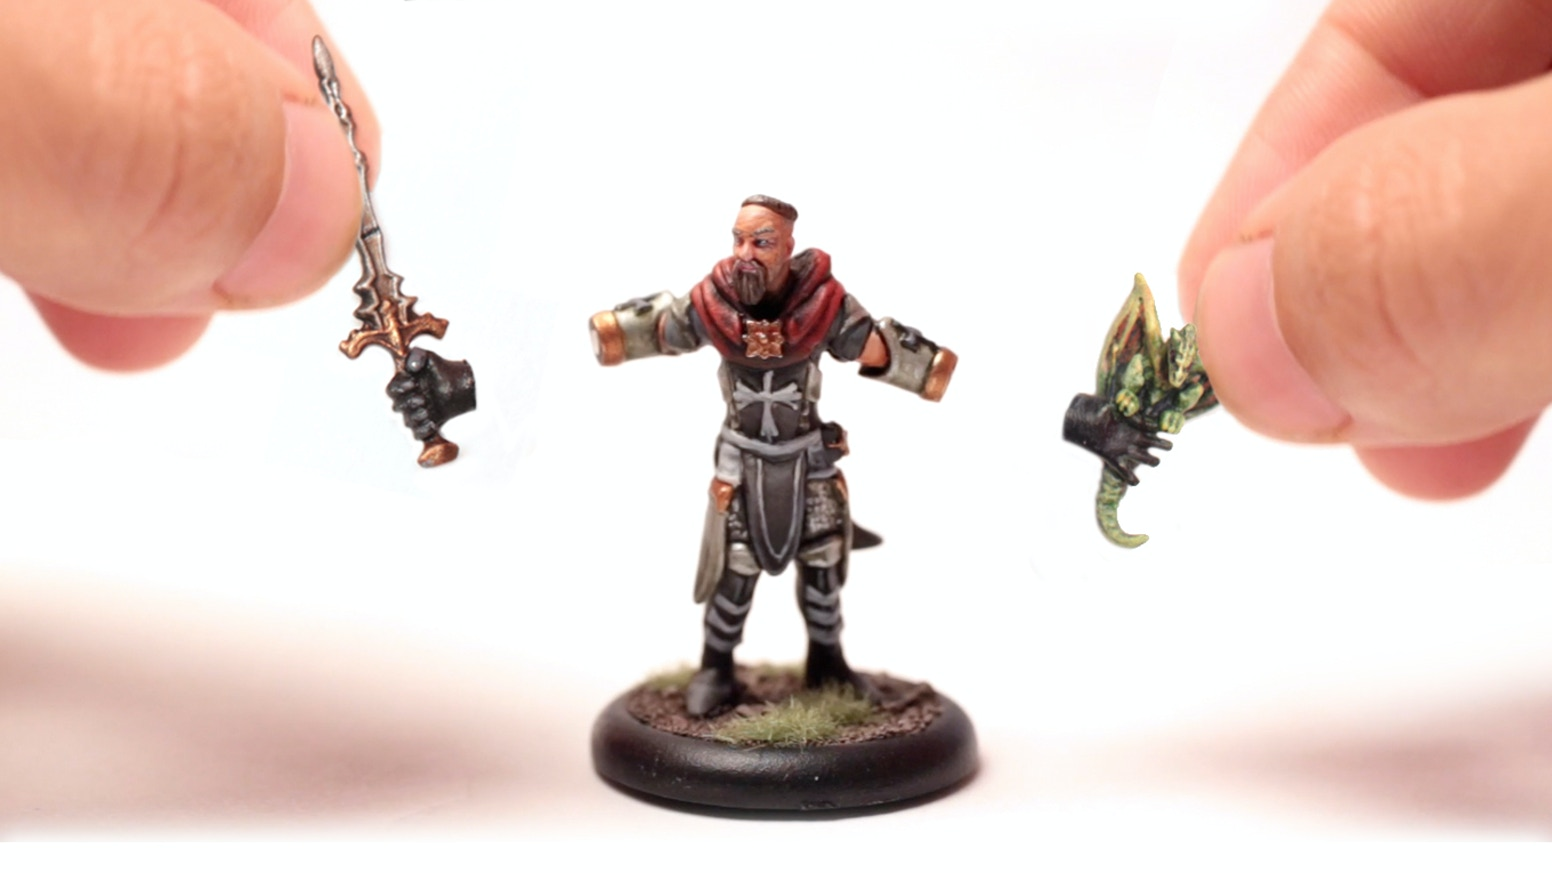 The world's first hot-swappable gaming miniatures! A line of minis with interchangeable magnetic items to customize your loadout.